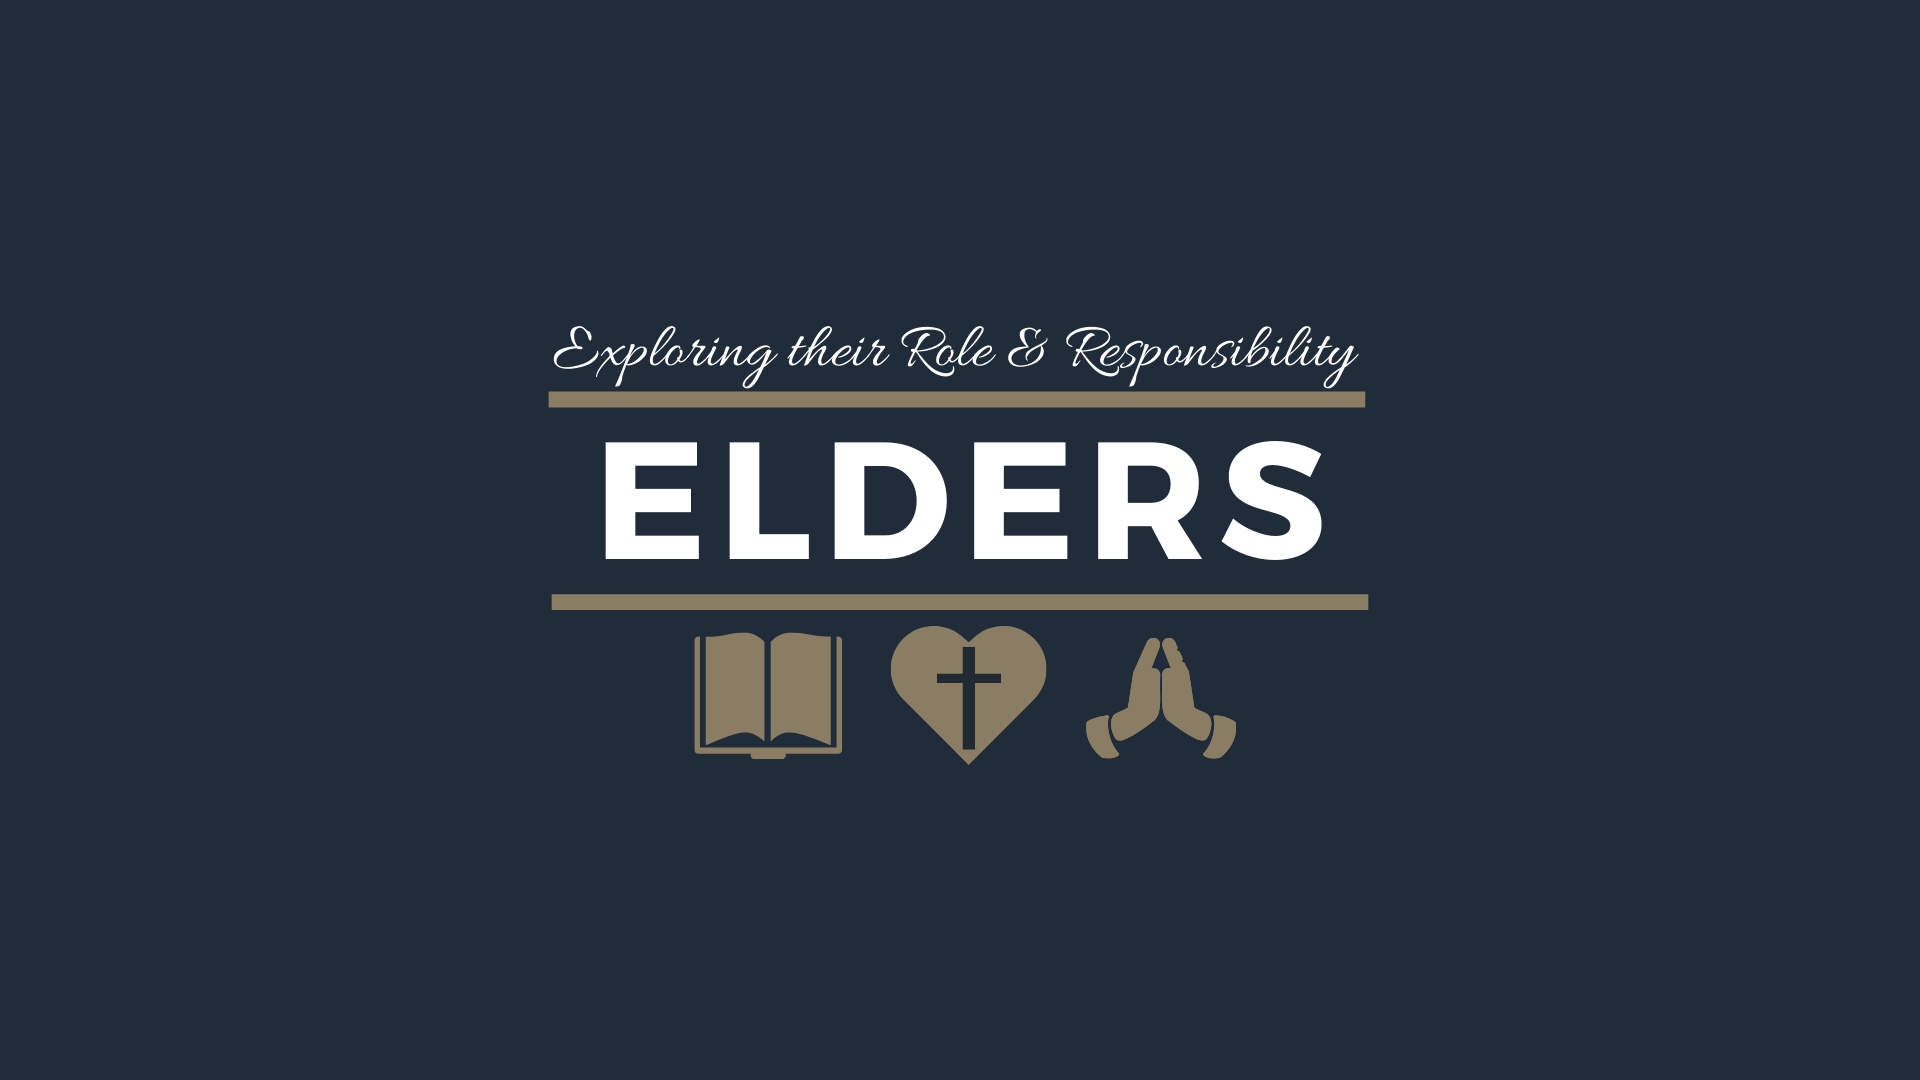 The Qualifications for an Elder